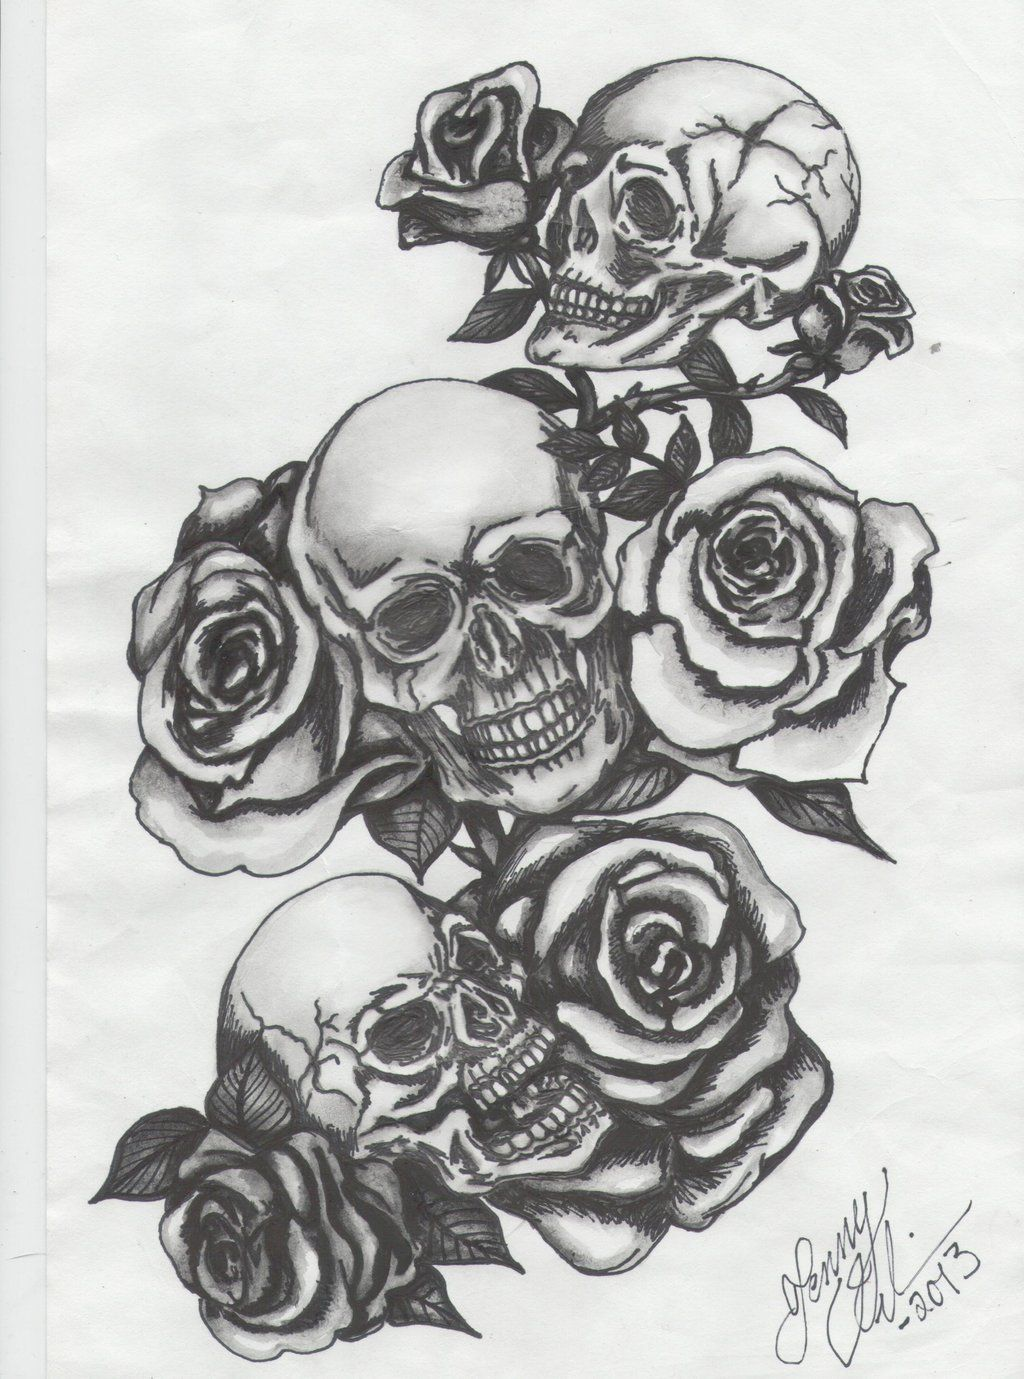 15f30268b097e Three skulls with roses by Jenny-Blue.deviantart.com on @deviantART. A  (cliche) composition of skulls and roses. Always a good combination.